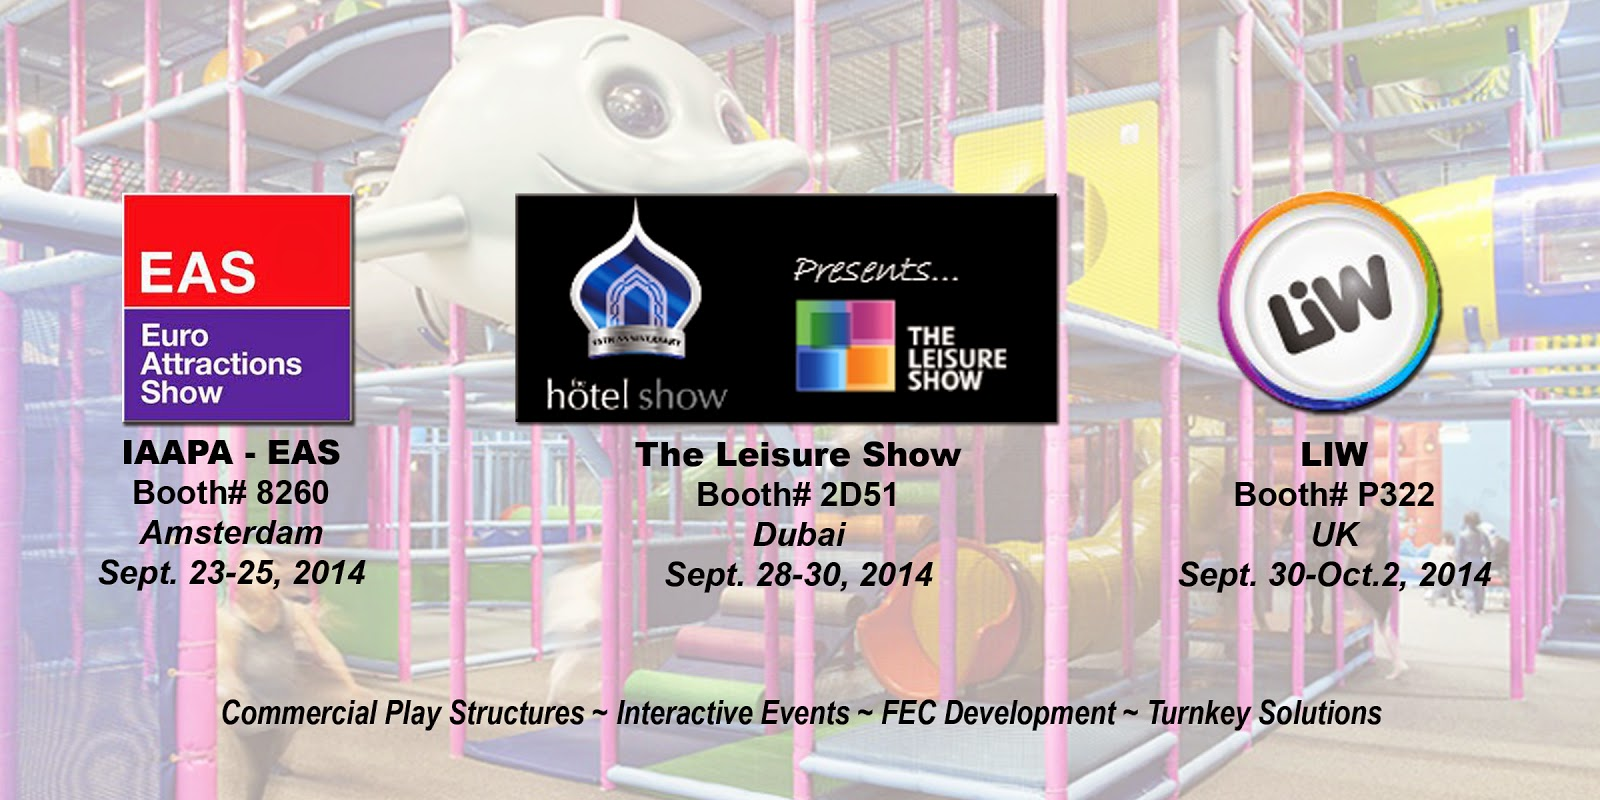 #Iplayco #IAAPA #EAS2014 #IAAPAHQ #LIW #TheLeisureShow IAAPA: International Association of Amusement Parks and Attractions #LIW2014 #LeisureShow #IAAPAEurope IAAPAEurope